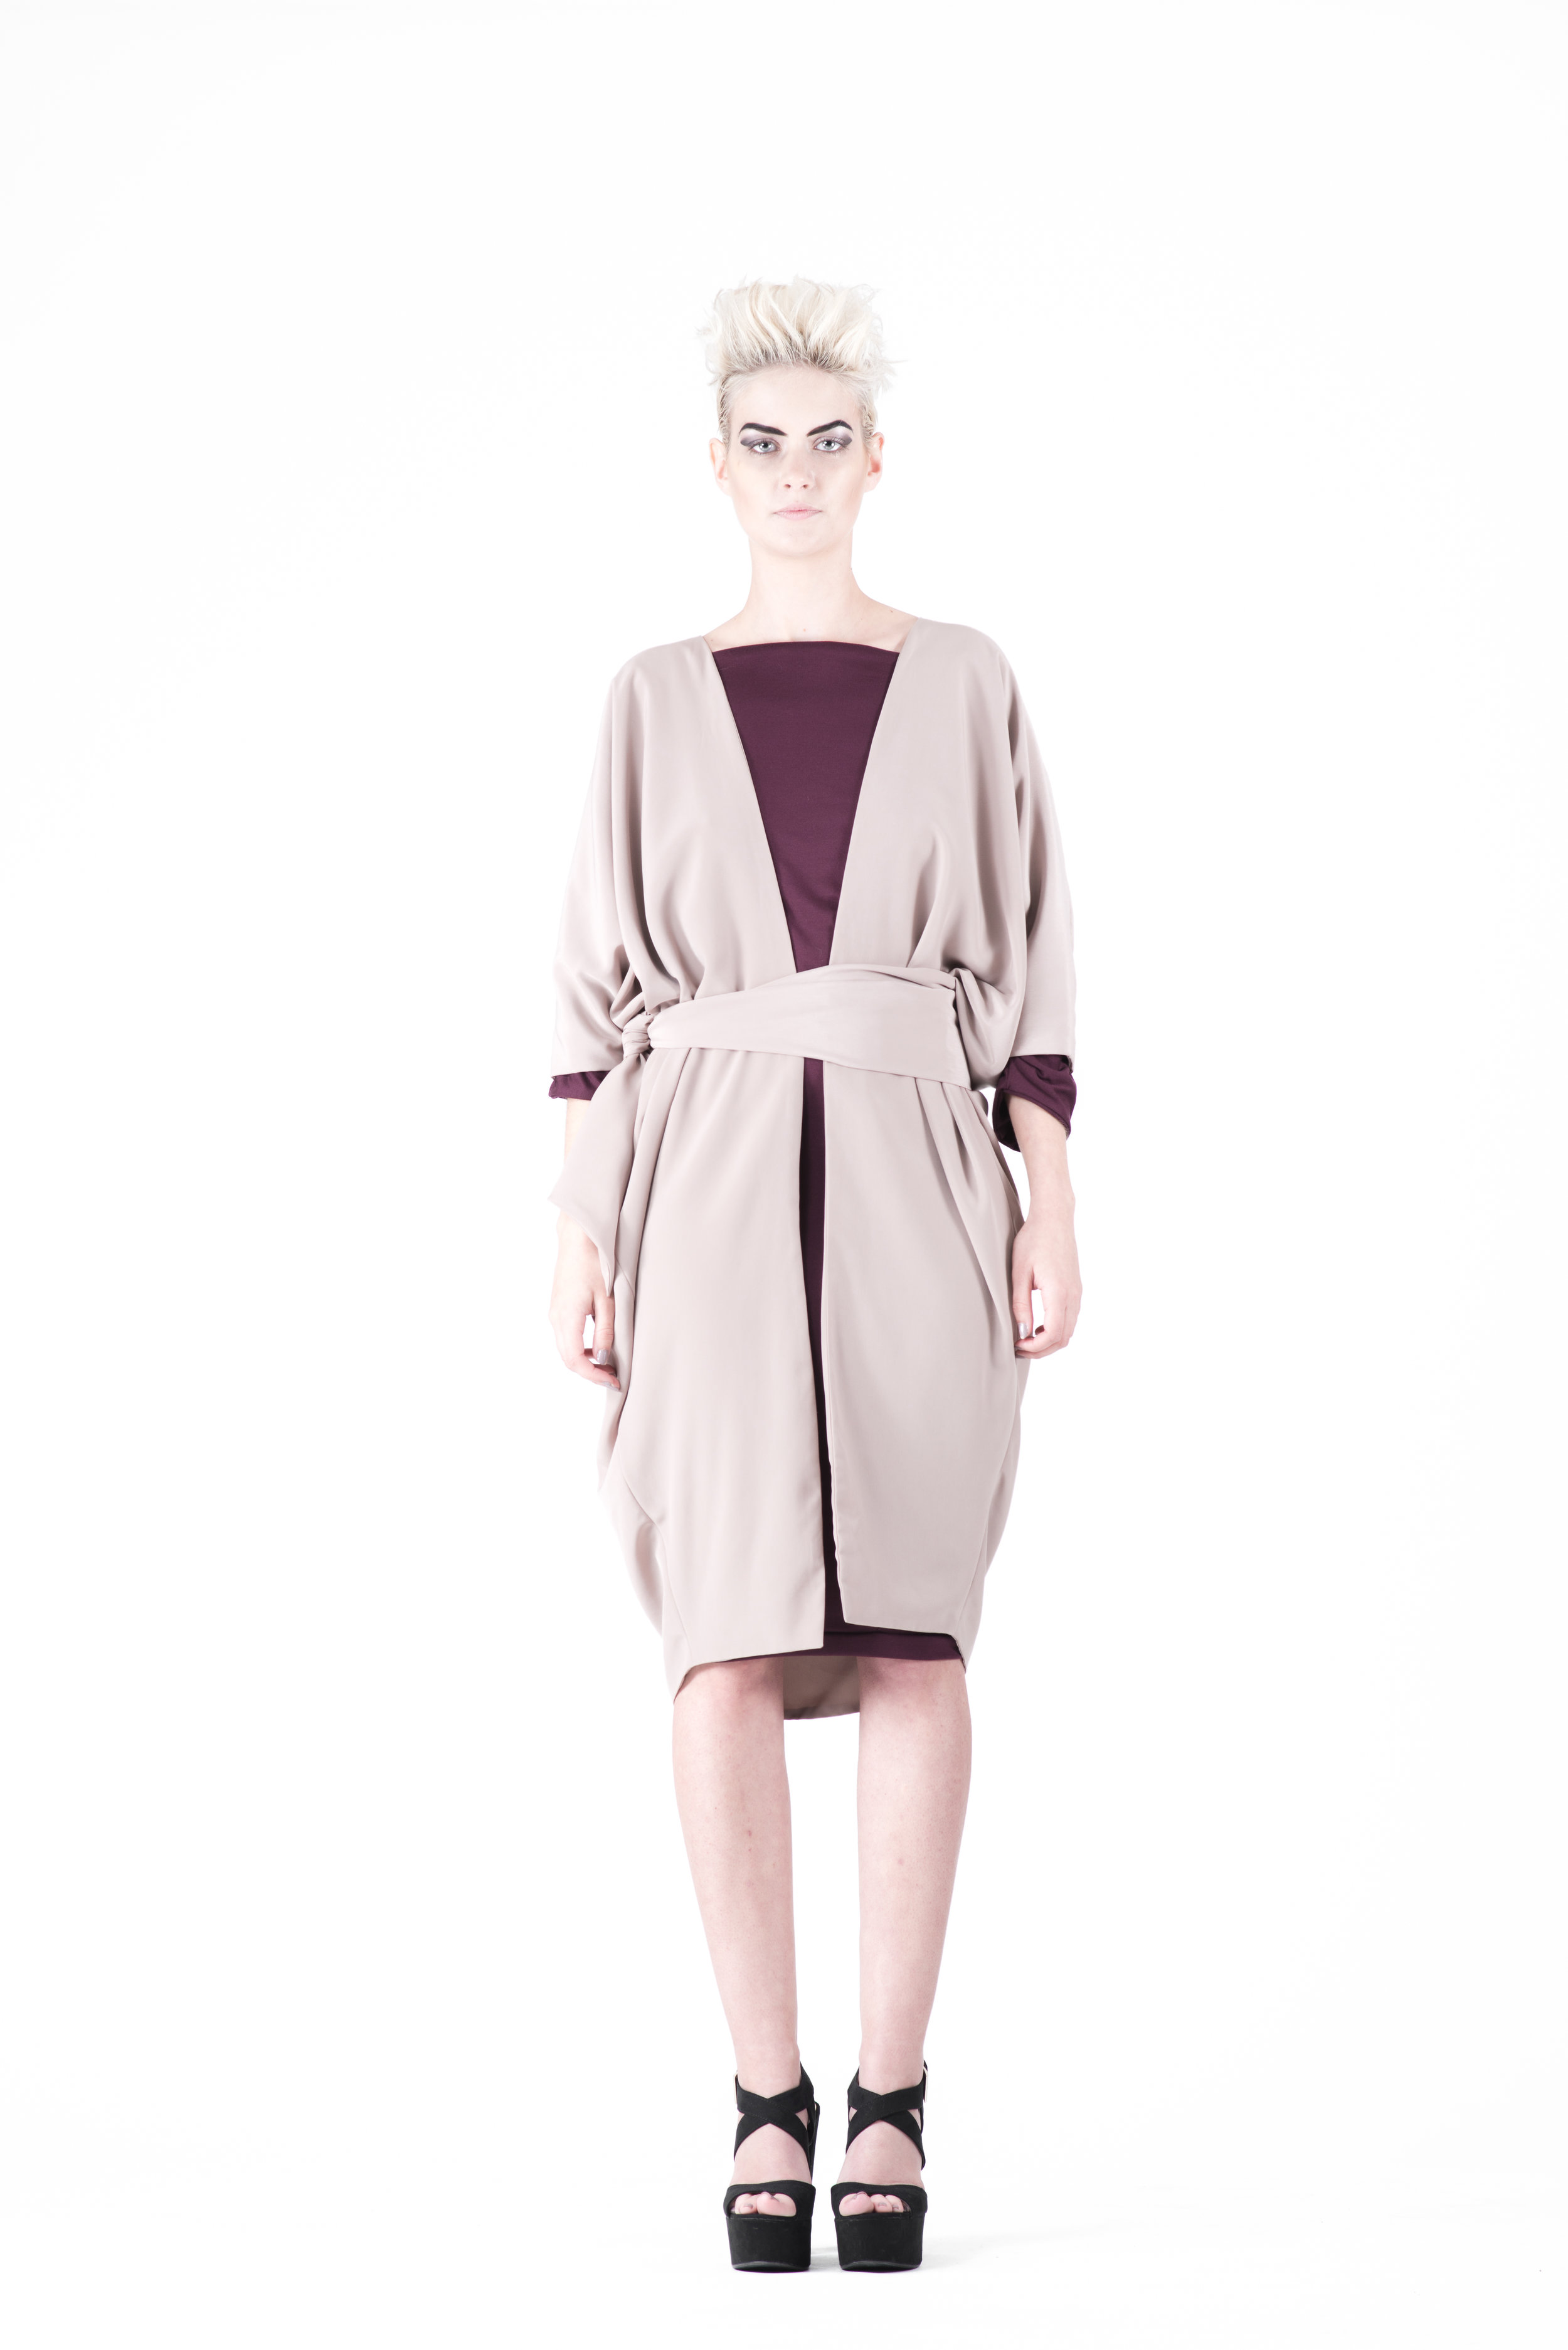 zaramia-ava-zaramiaava-leeds-fashion-designer-ethical-sustainable-tailored-minimalist-jacket-nude-ayame-coat-mika-plum-top-yuko-plum-versatile-drape-cowl-styling-womenswear-models-photoshoot-8